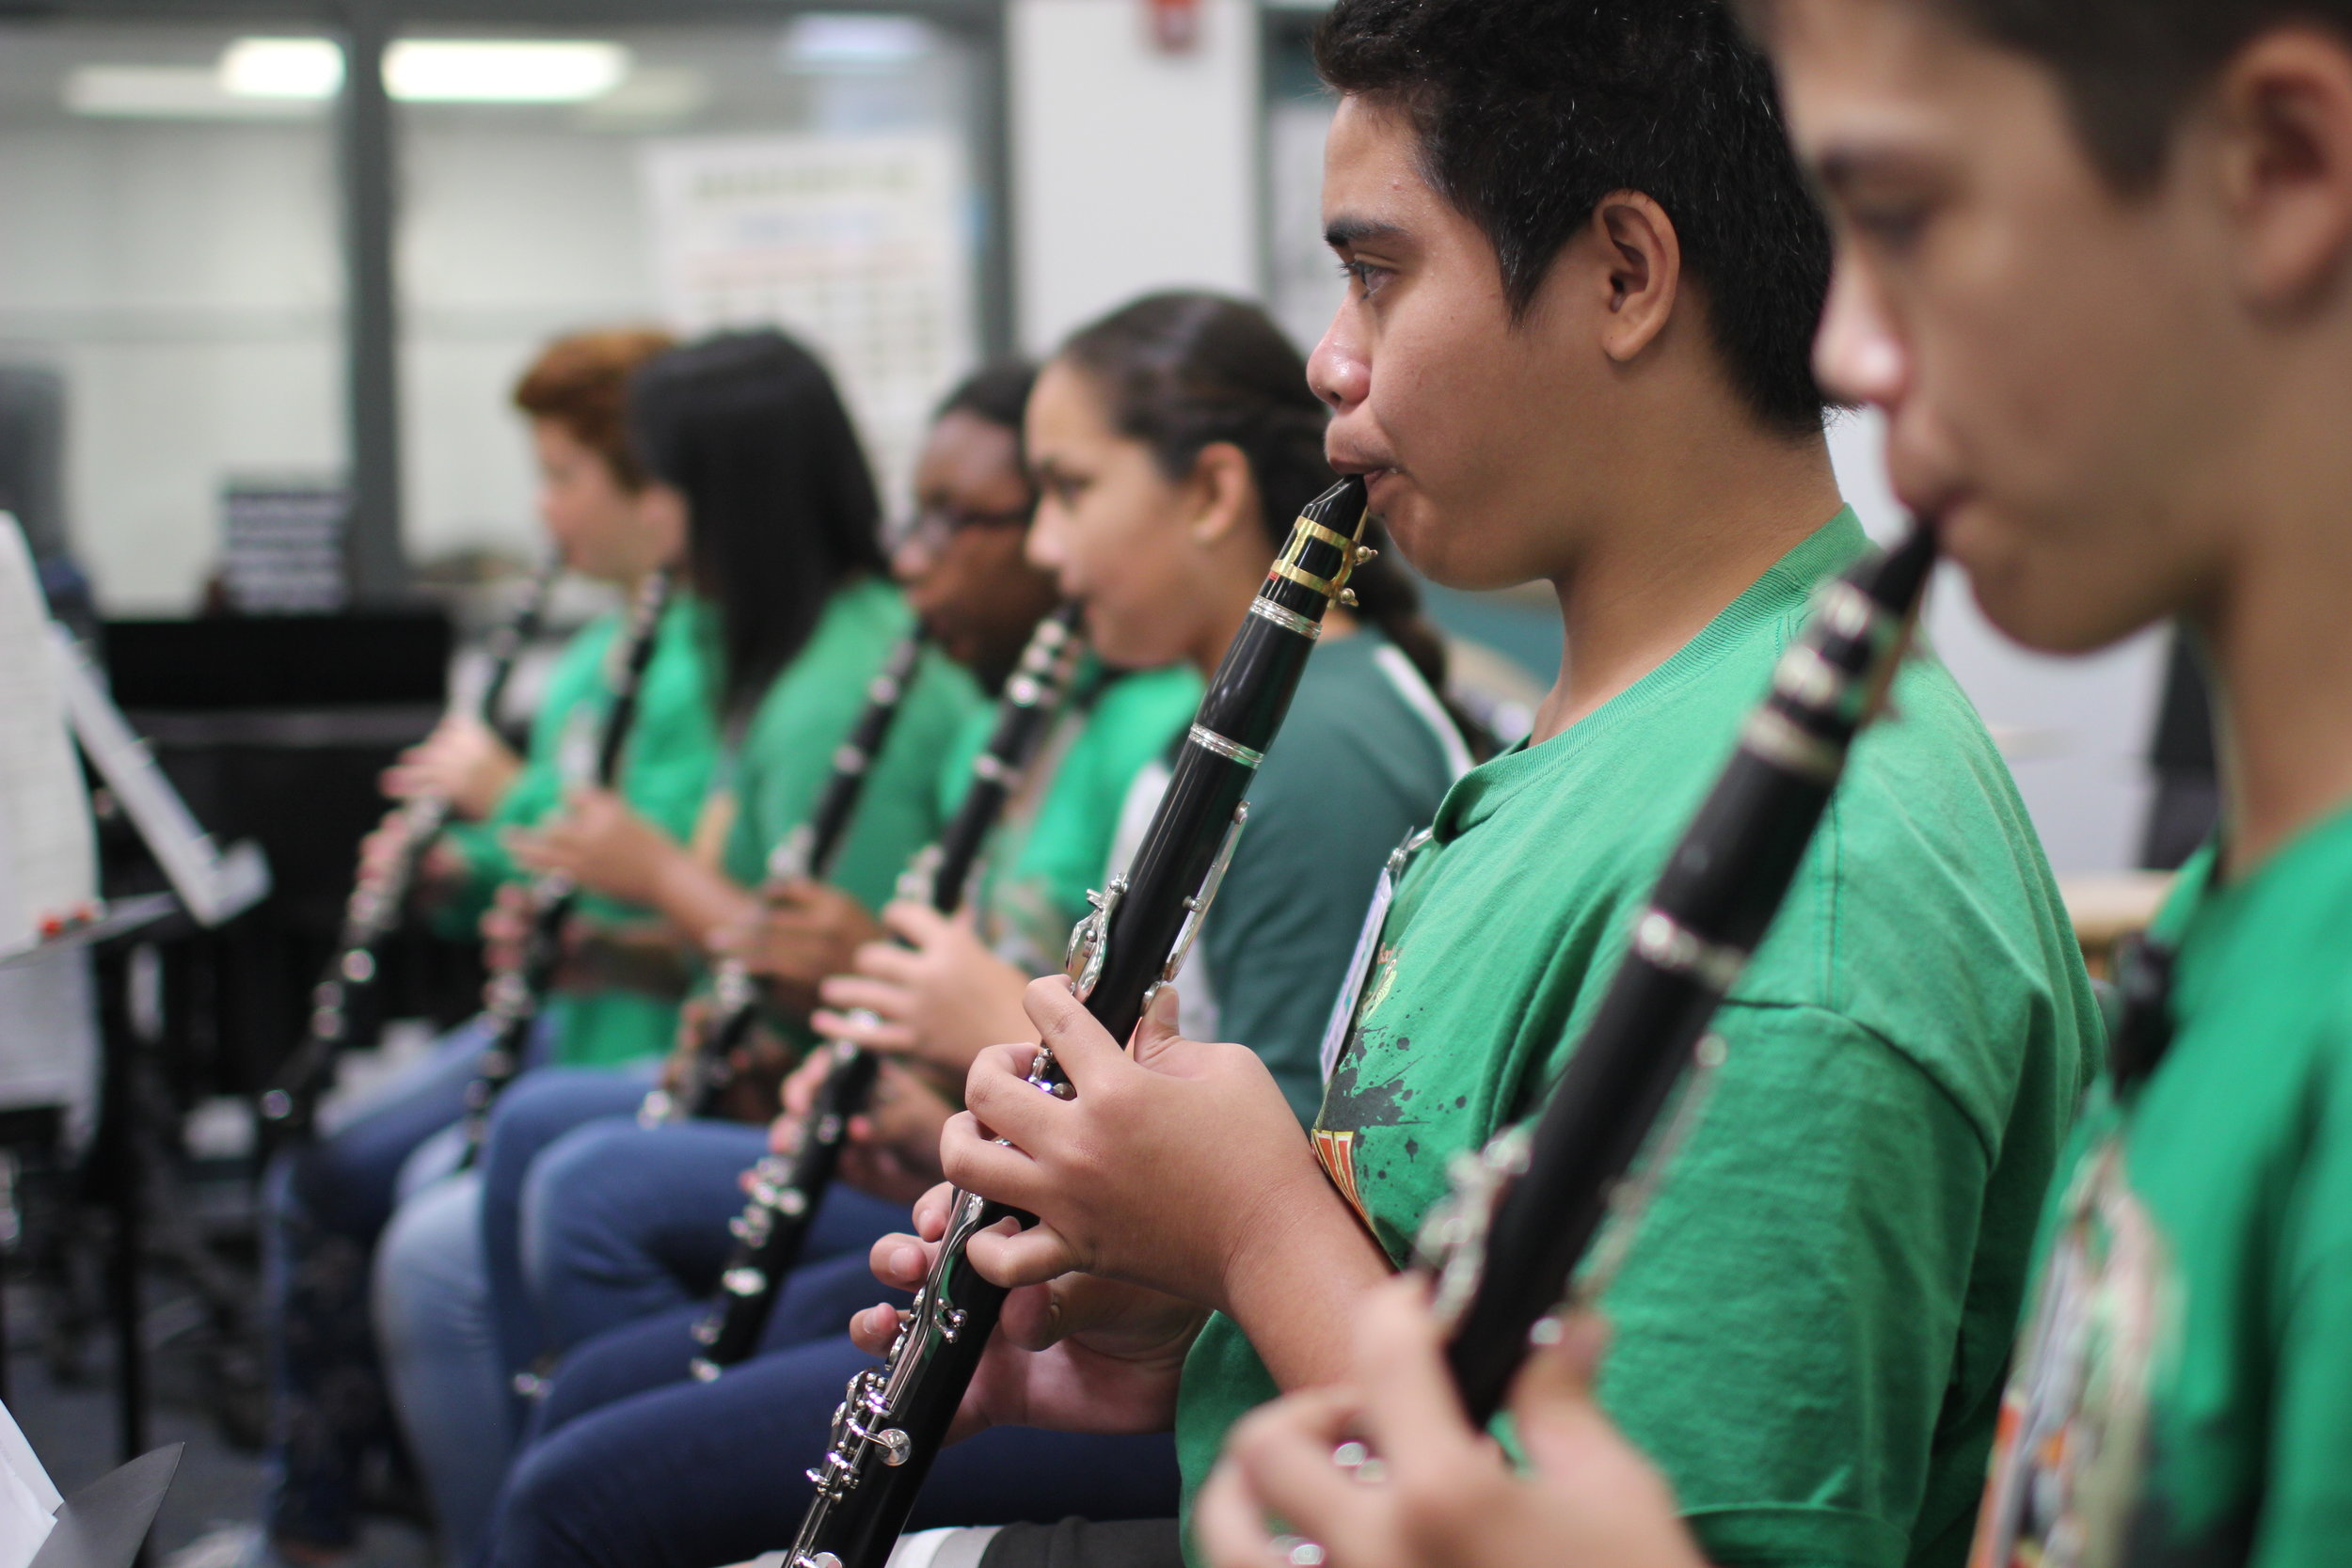 Ewa Makai students in band class playing clarinets.